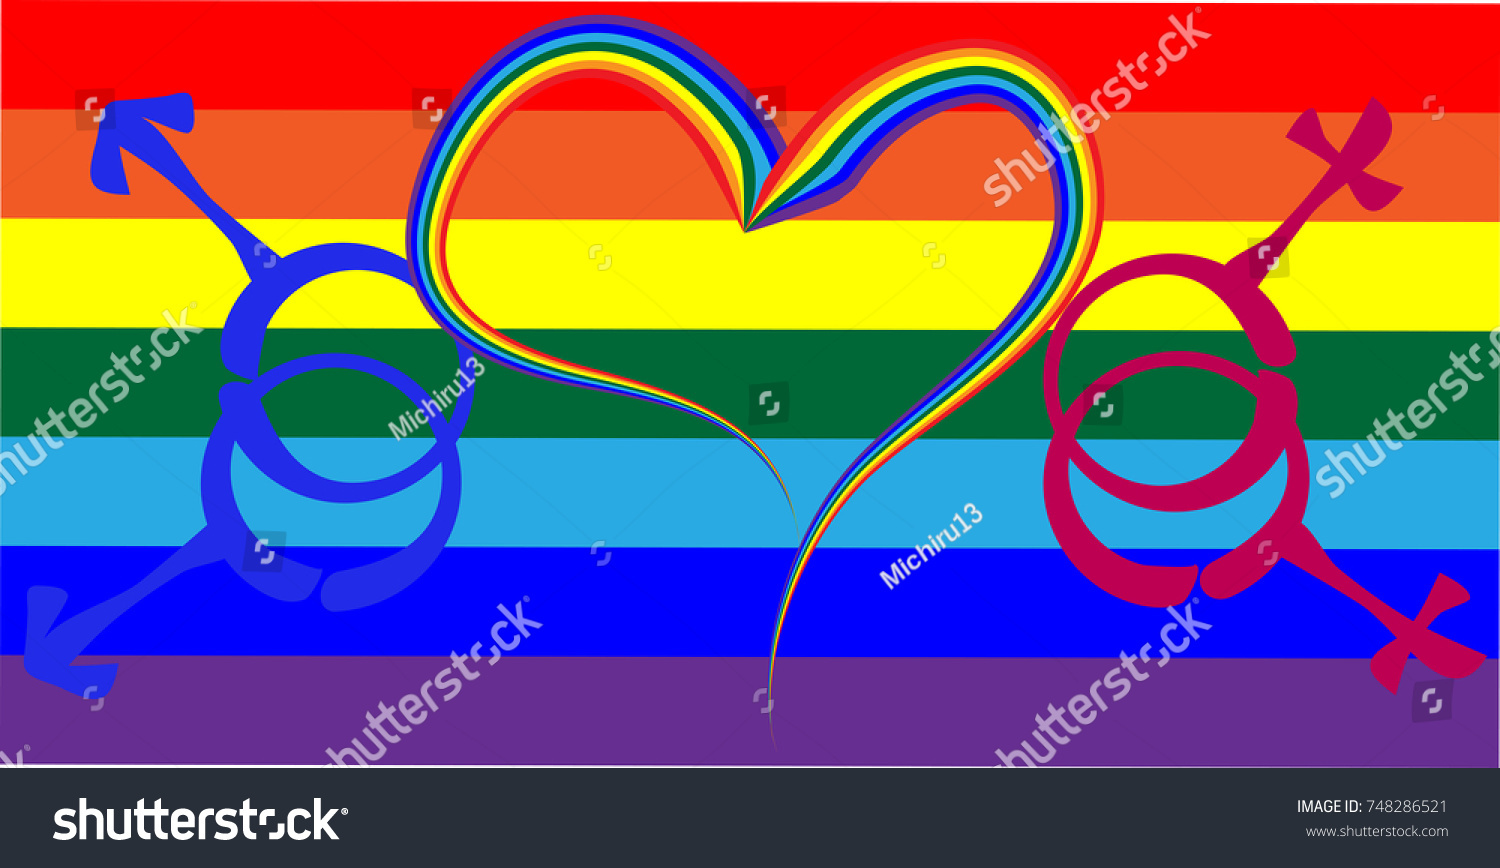 Heart Drawn By Rainbow Symbols Male Stock Illustration 748286521